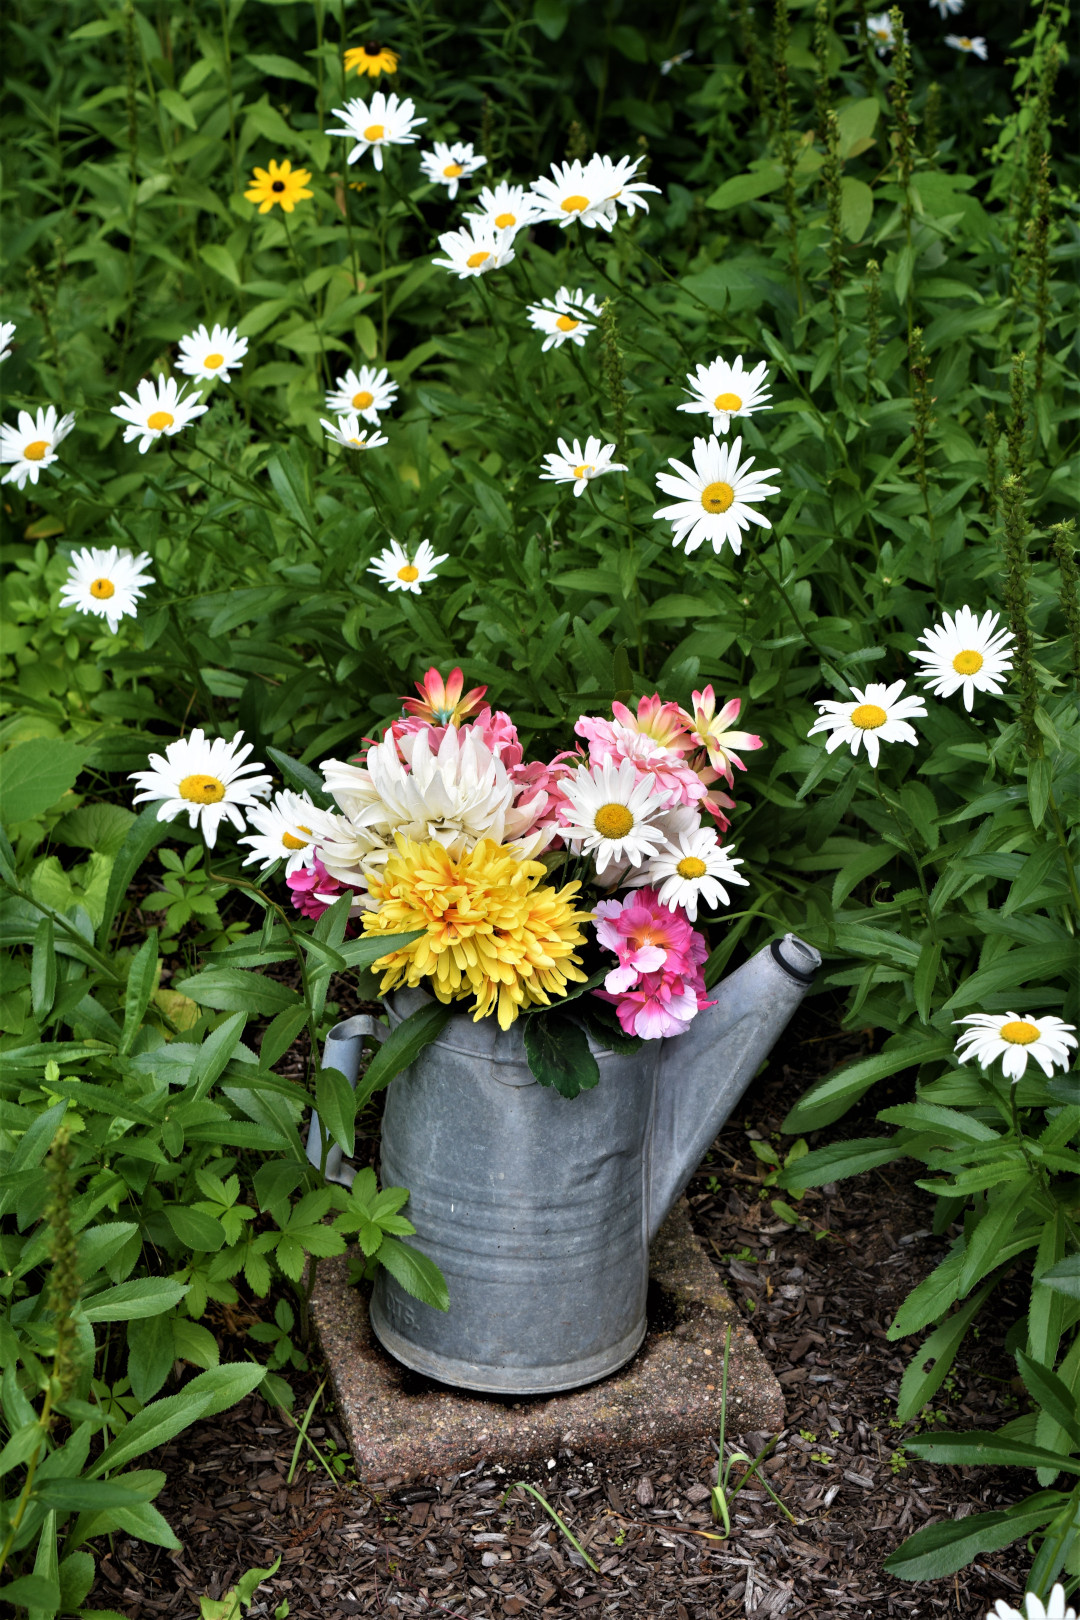 old watering as a flower vase in the garden